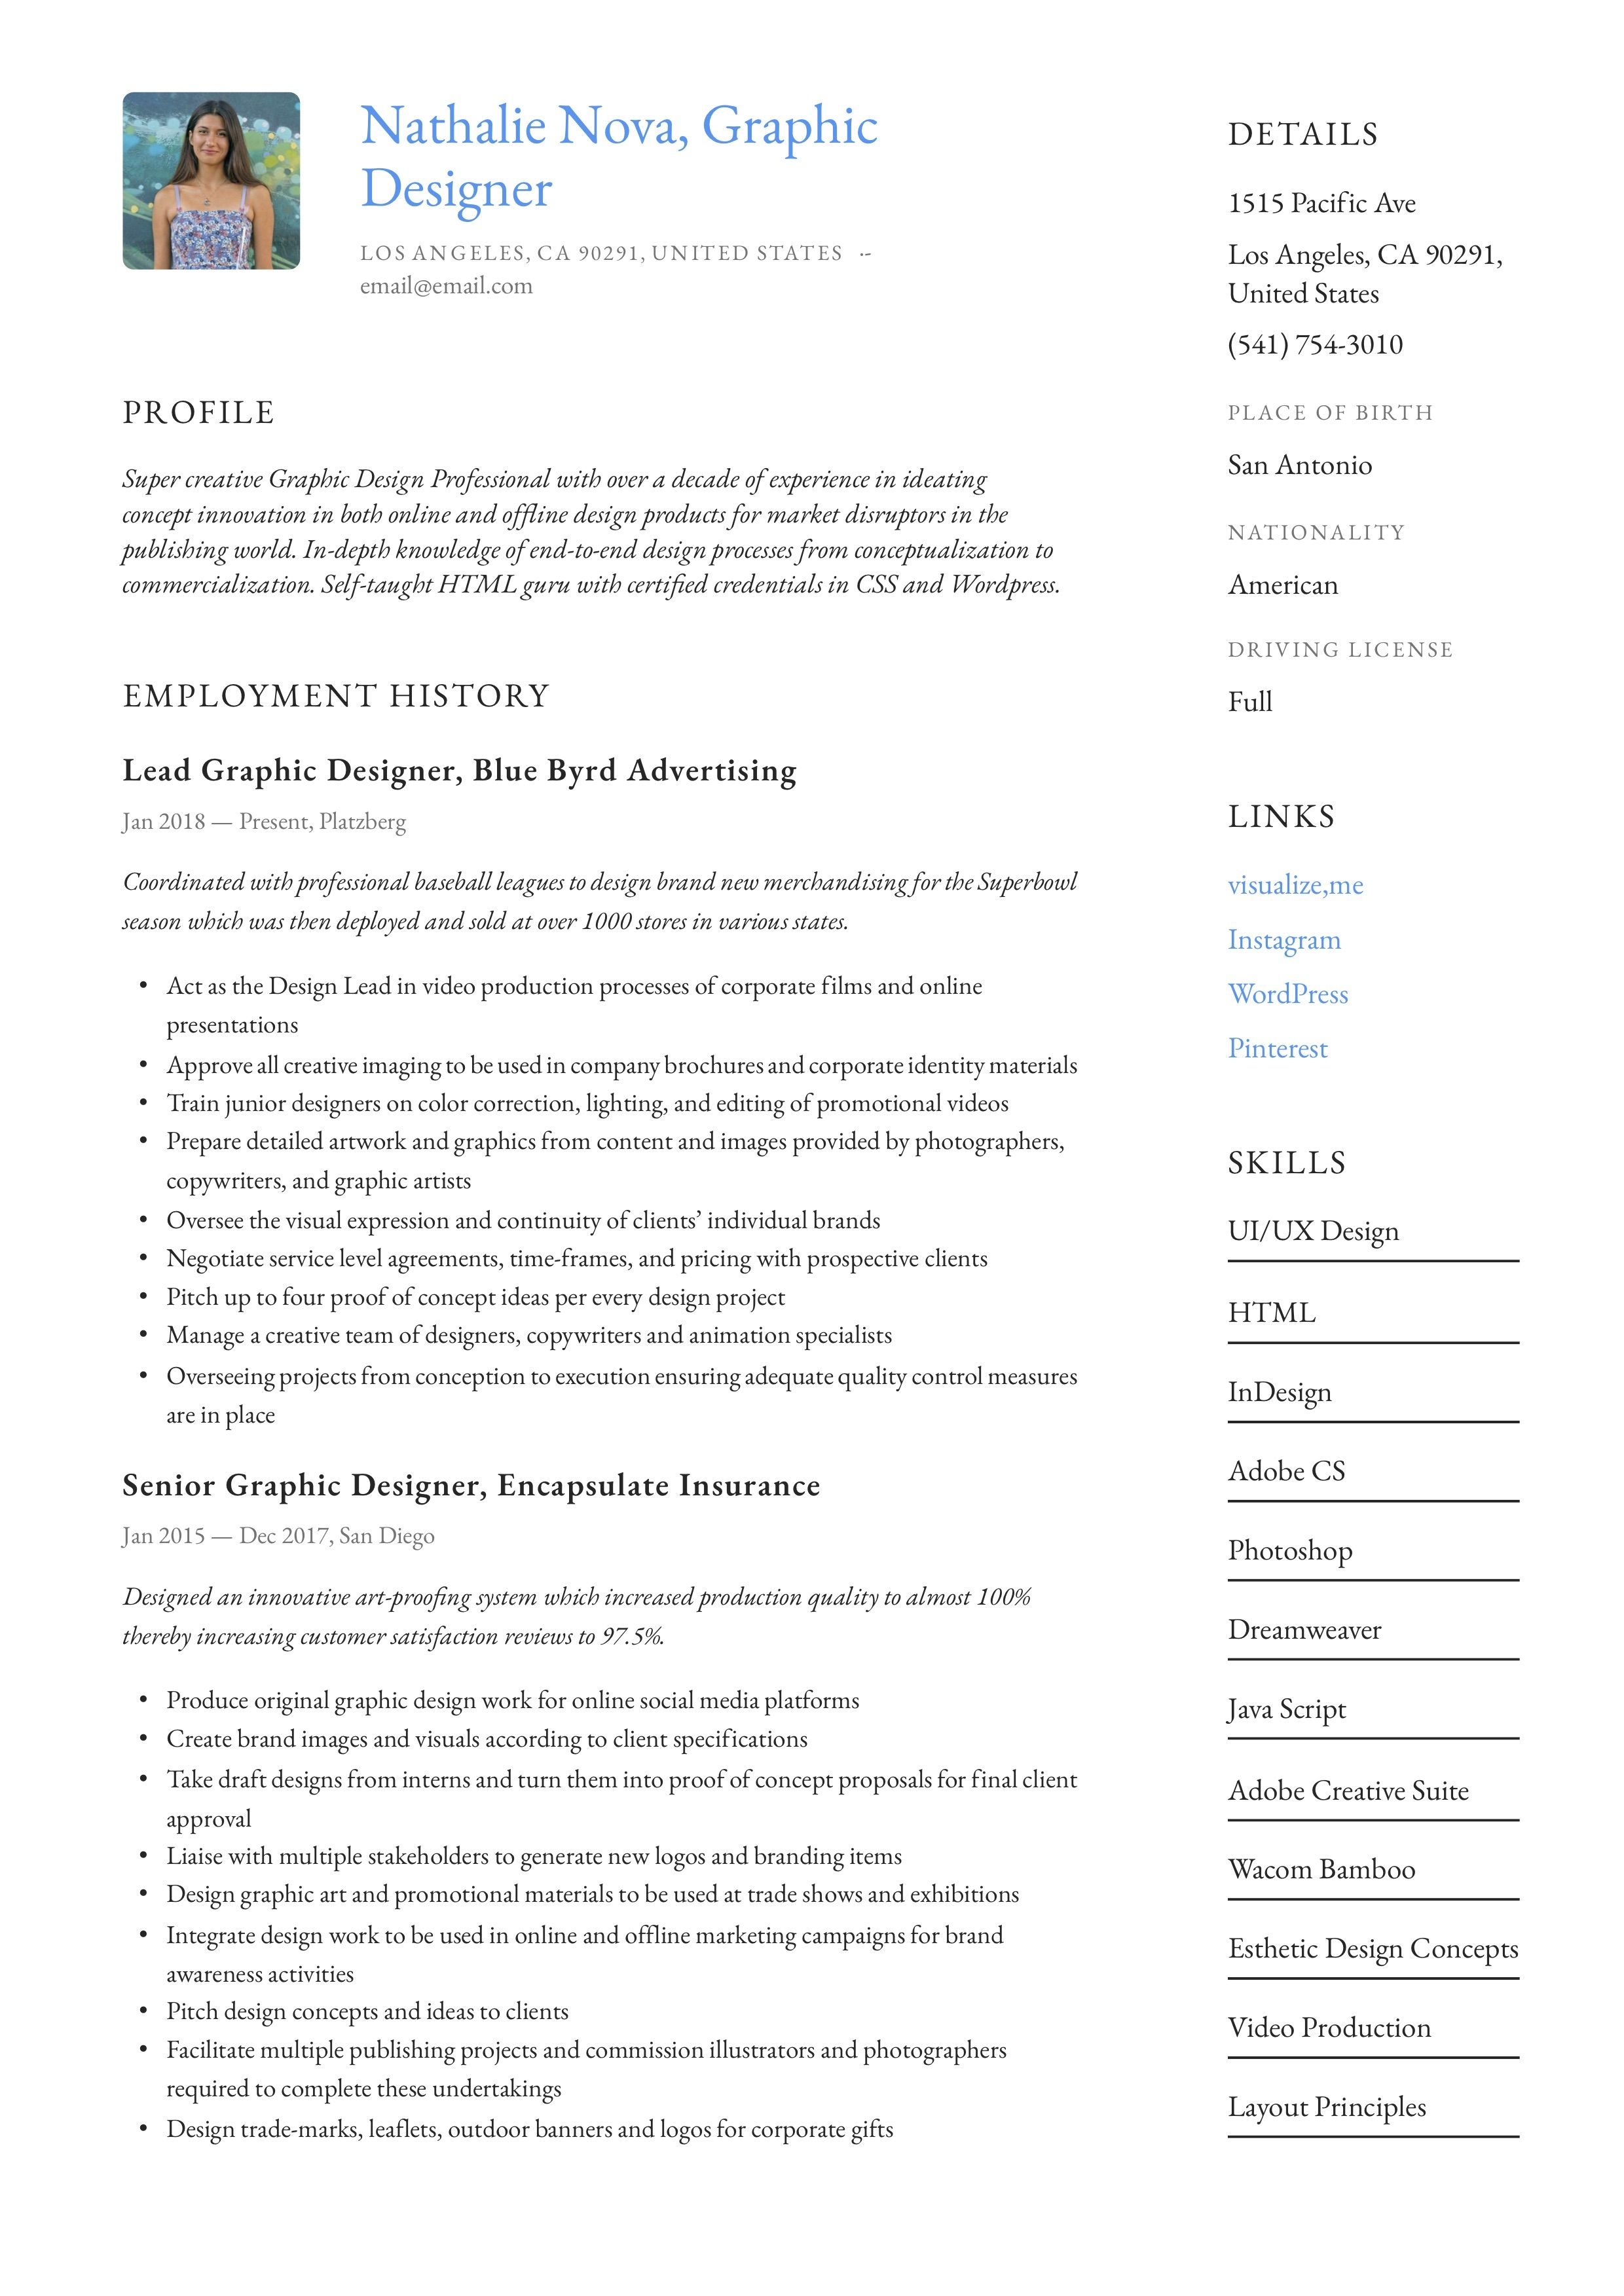 Graphic Designer Resume & Writing Guide in 2020 Resume